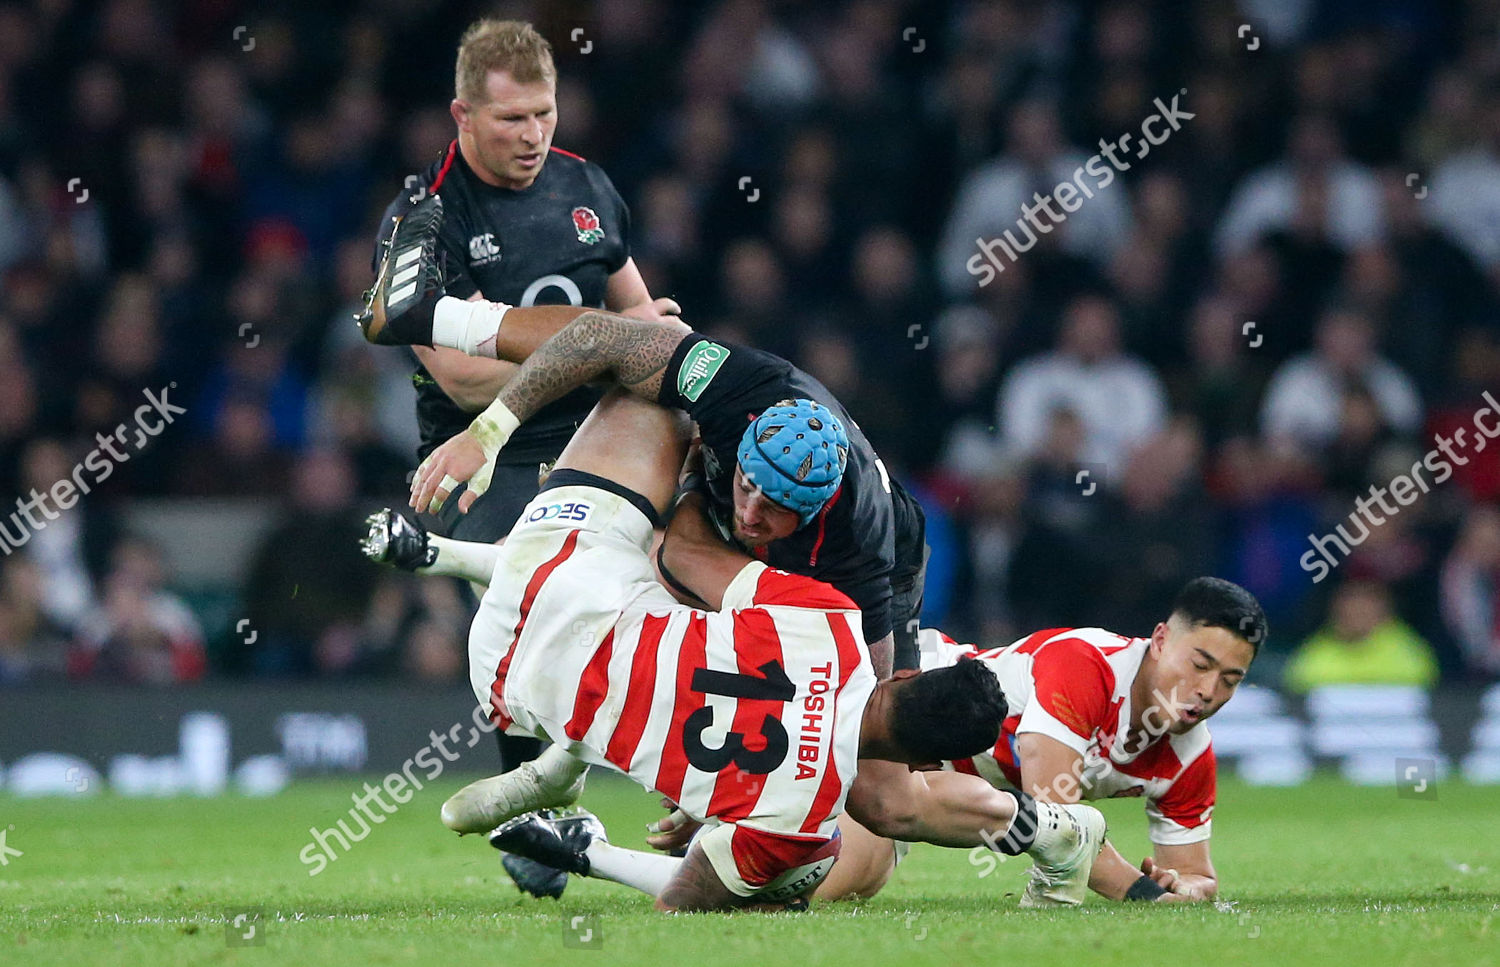 53f033dcc03 England v Japan, Rugby Union, Quilter Autumn Internationals - Twickenham  Stadium, London, UK - 17 Nov 2018 Stock Image by Andrew Fosker for  editorial use, ...